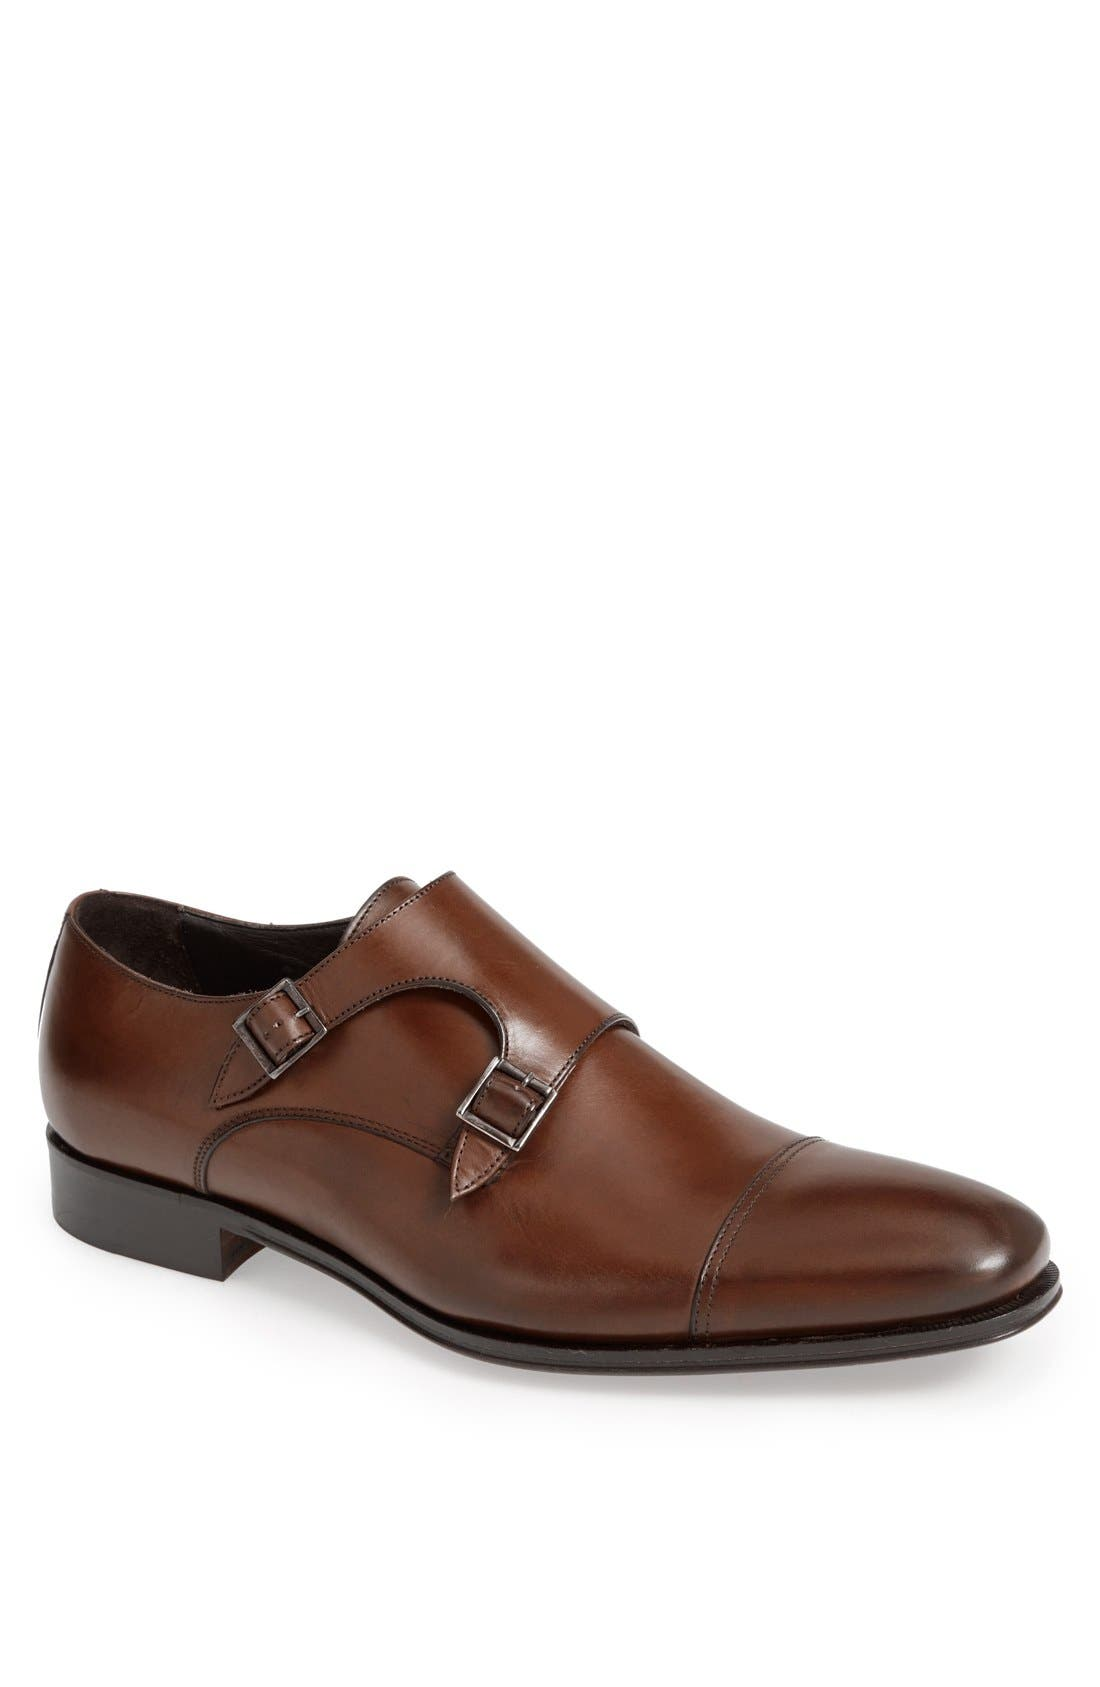 Grant Double-Buckle Monk-Strap Shoes in Alameda Brown